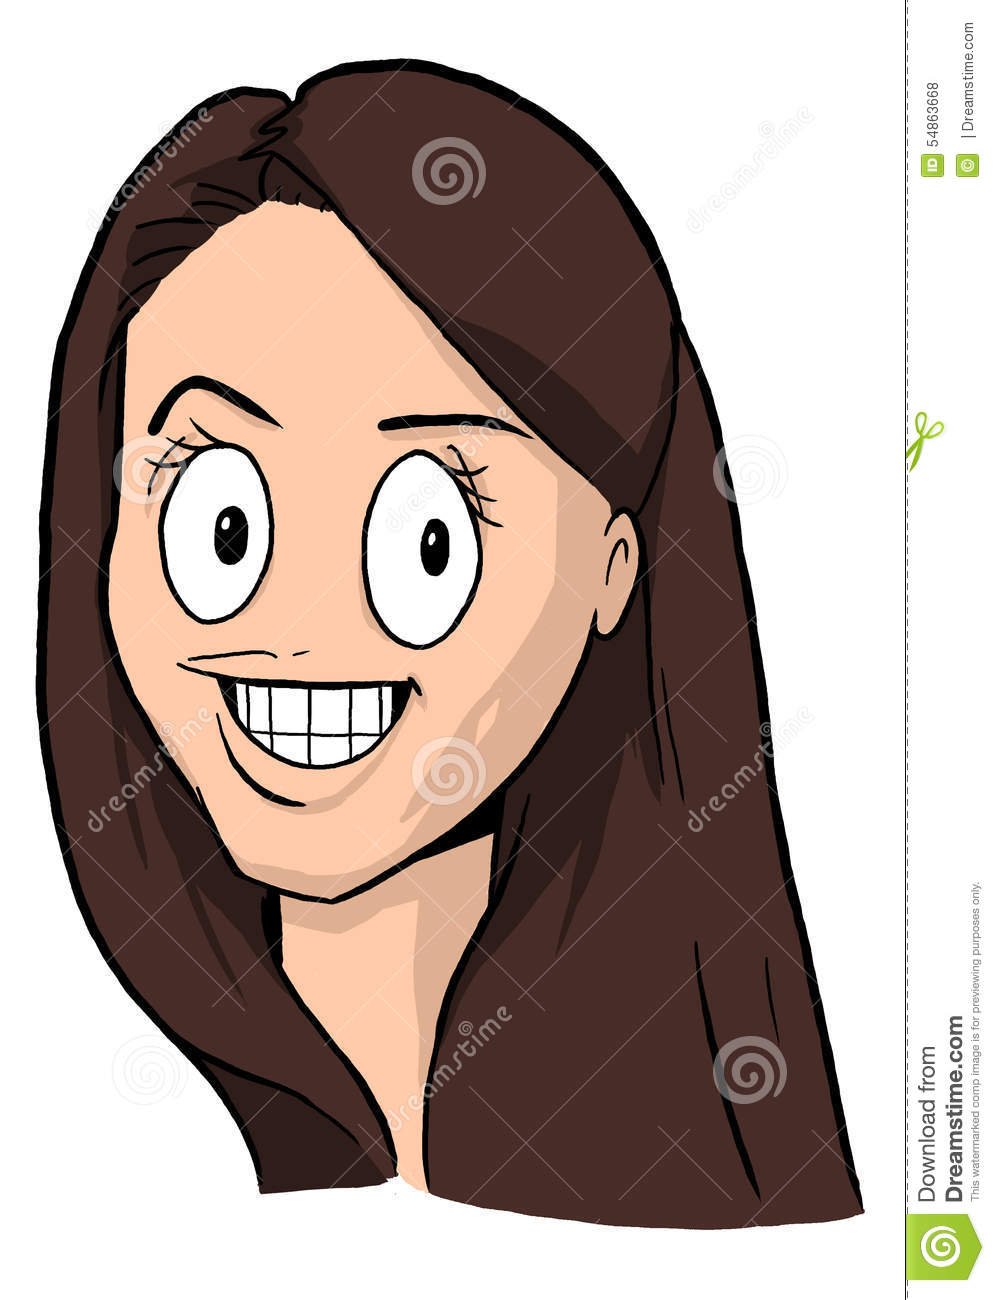 Caricature Of Girl With Dark Brown Hair, Big Eyes And Big Smile.